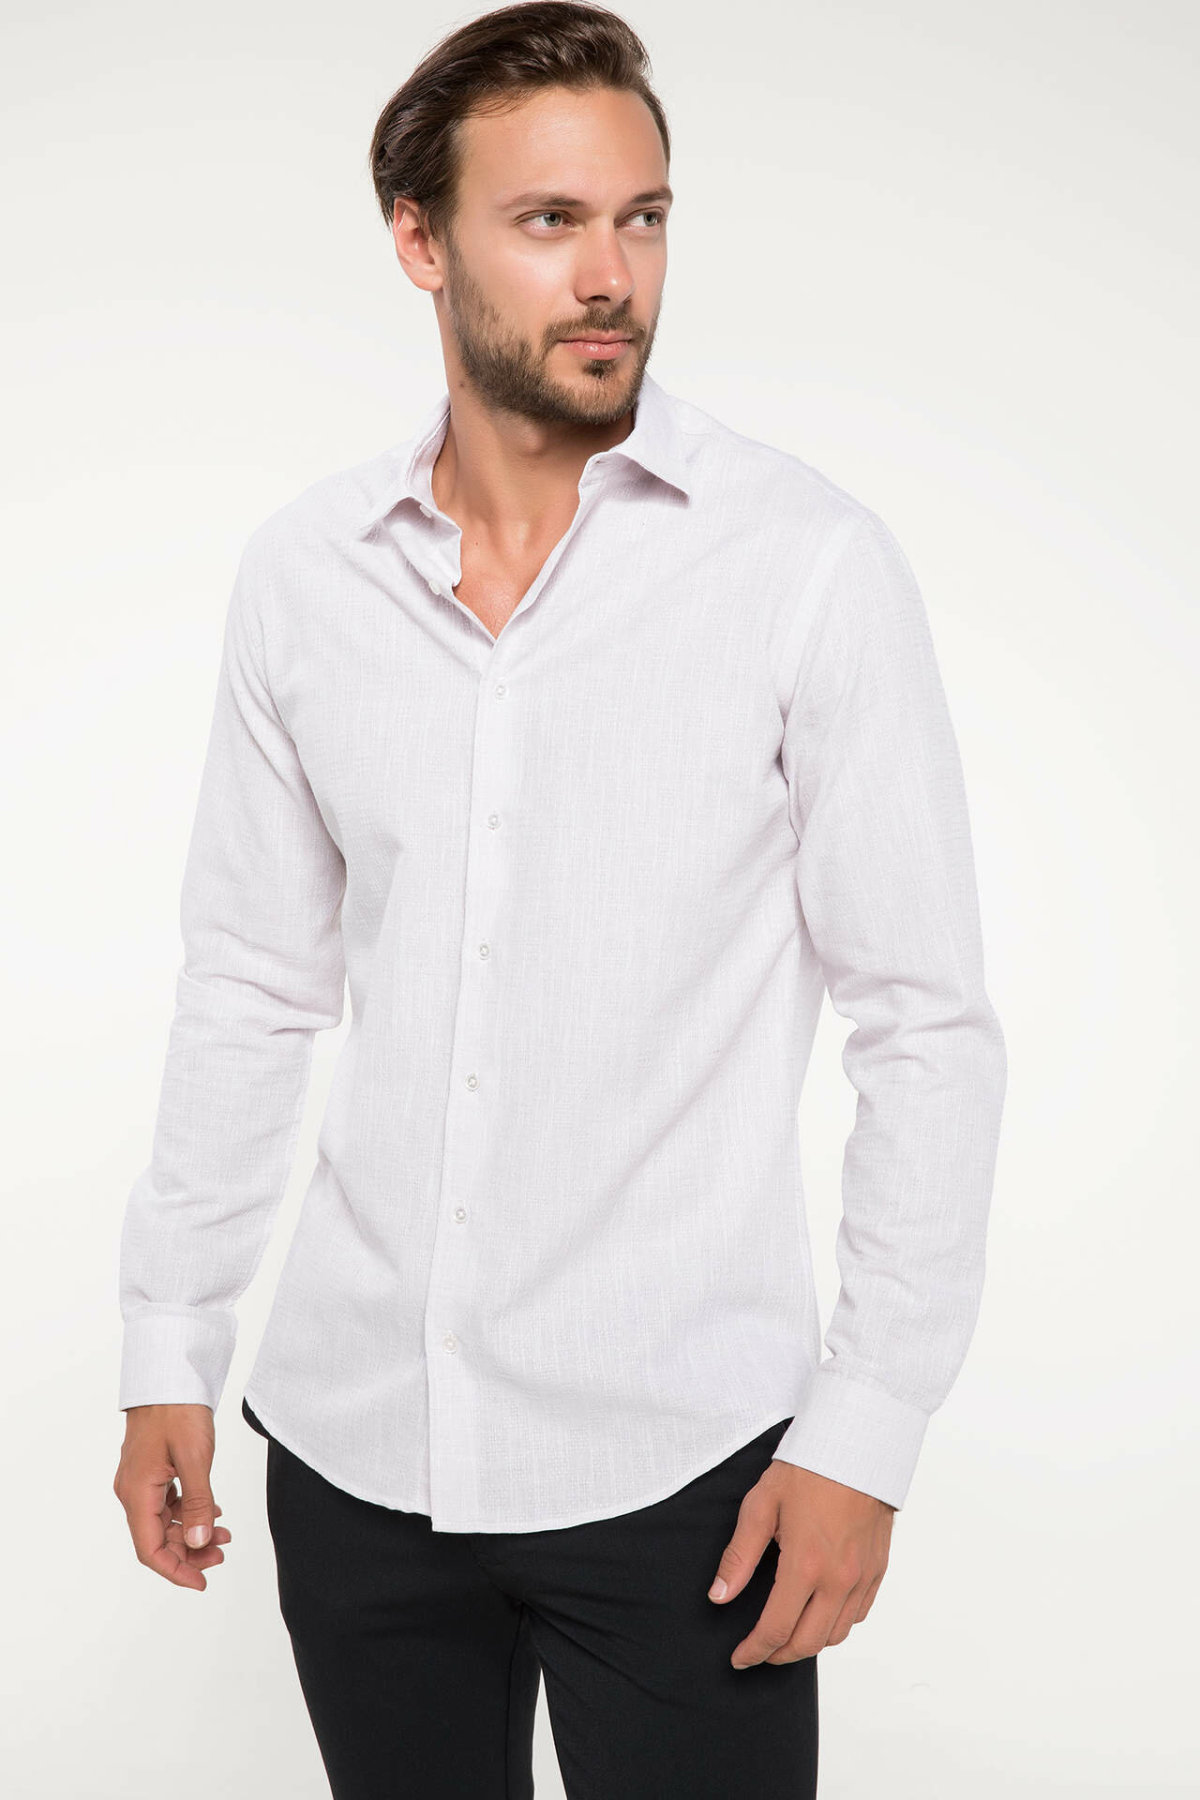 DeFacto Man Summer Smart Casual White Shirts Men Business Top Shirts Male Long Sleeve Shirt-J2864AZ18HS